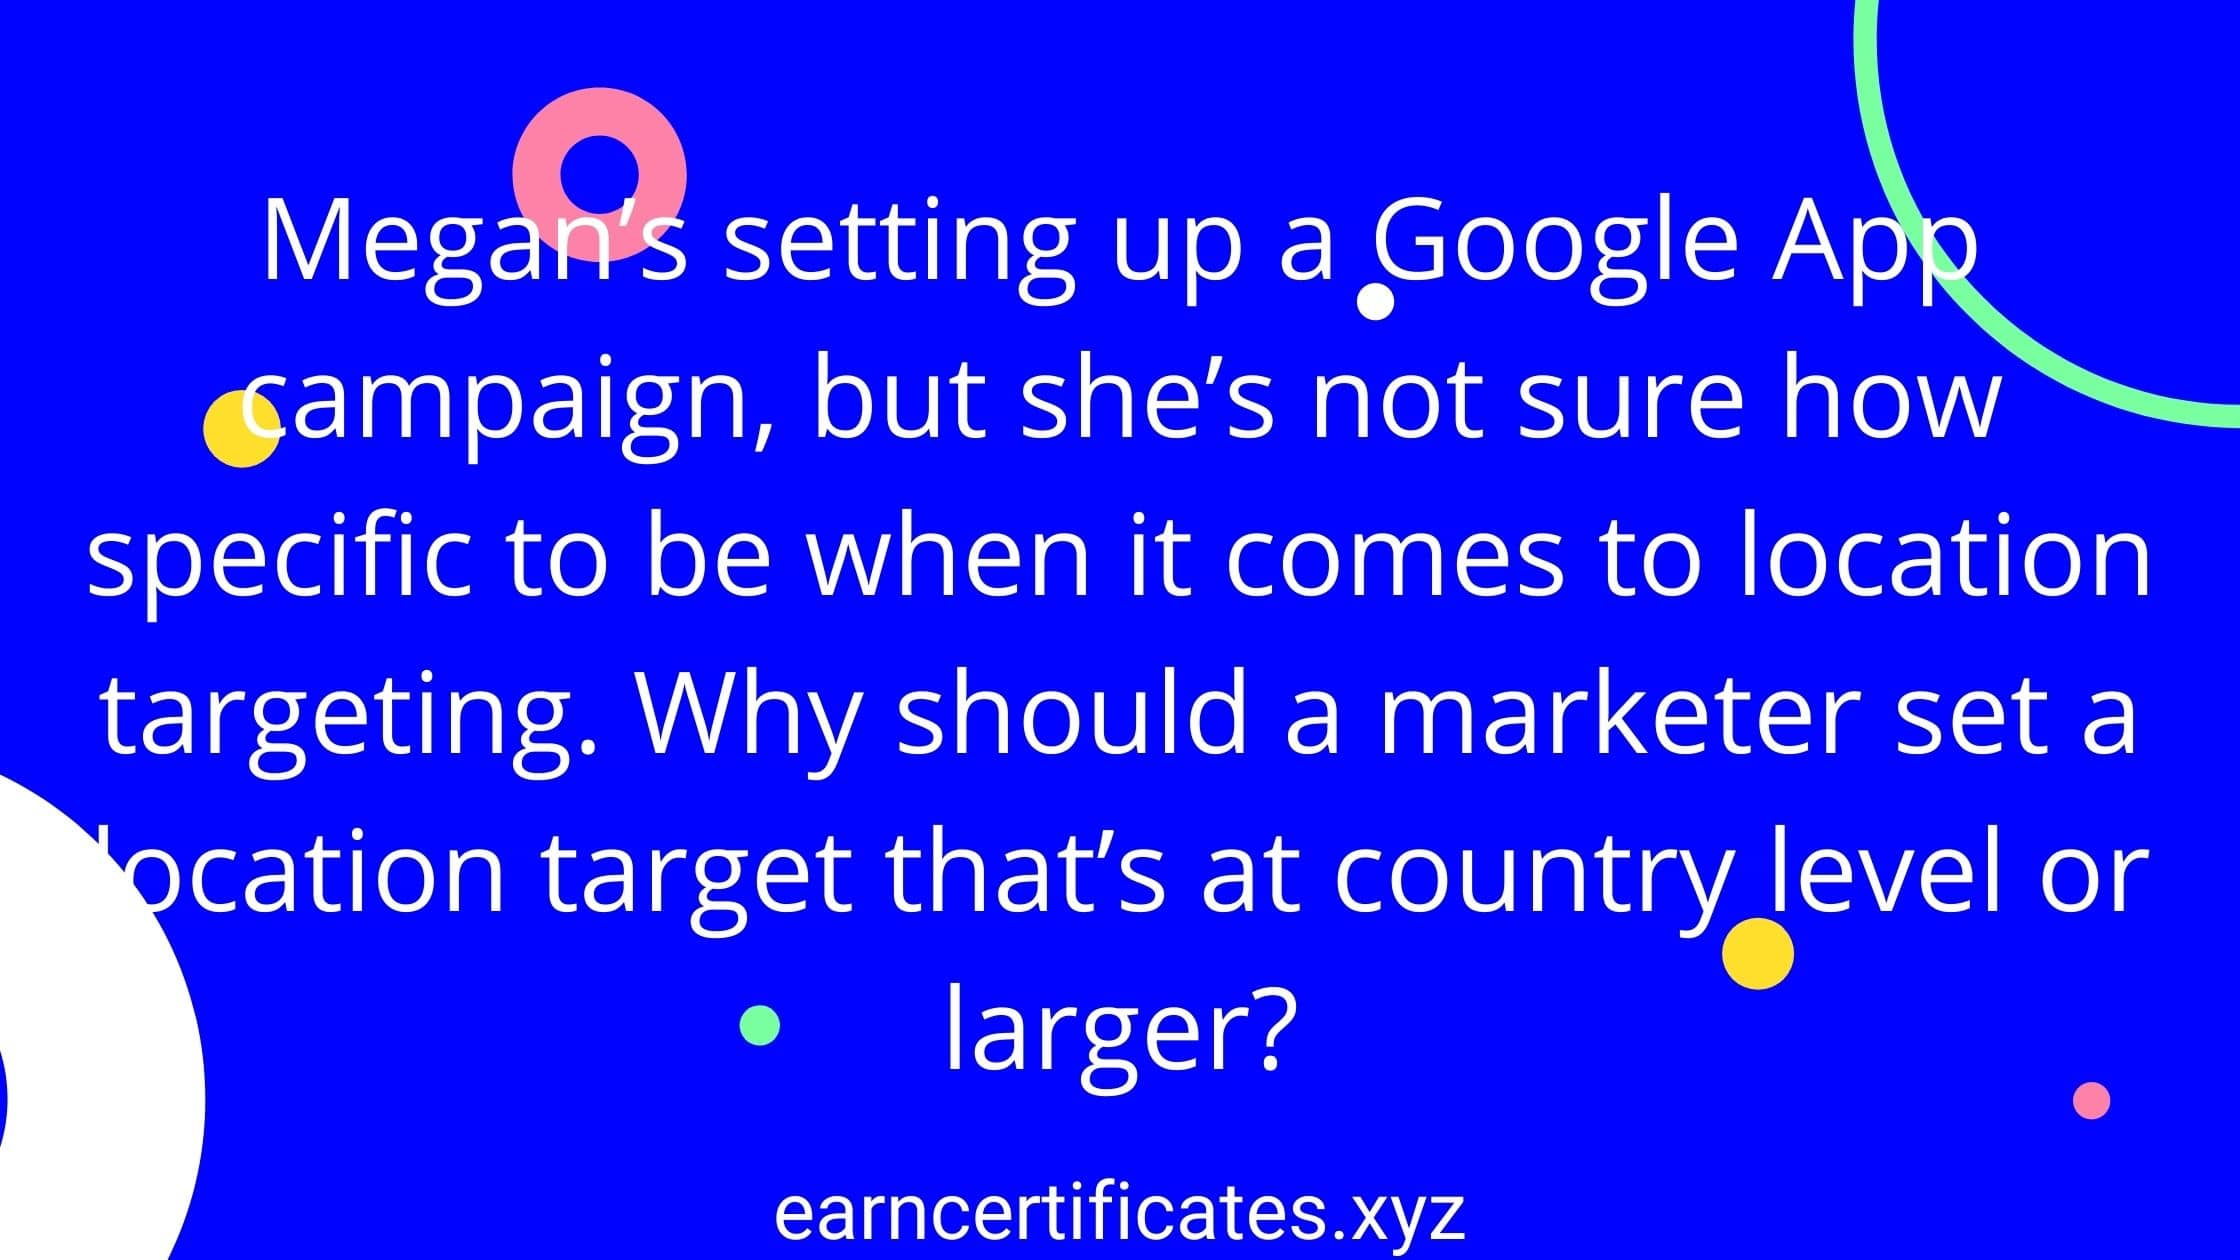 Megan's setting up a Google App campaign, but she's not sure how specific to be when it comes to location targeting. Why should a marketer set a location target that's at country level or larger?